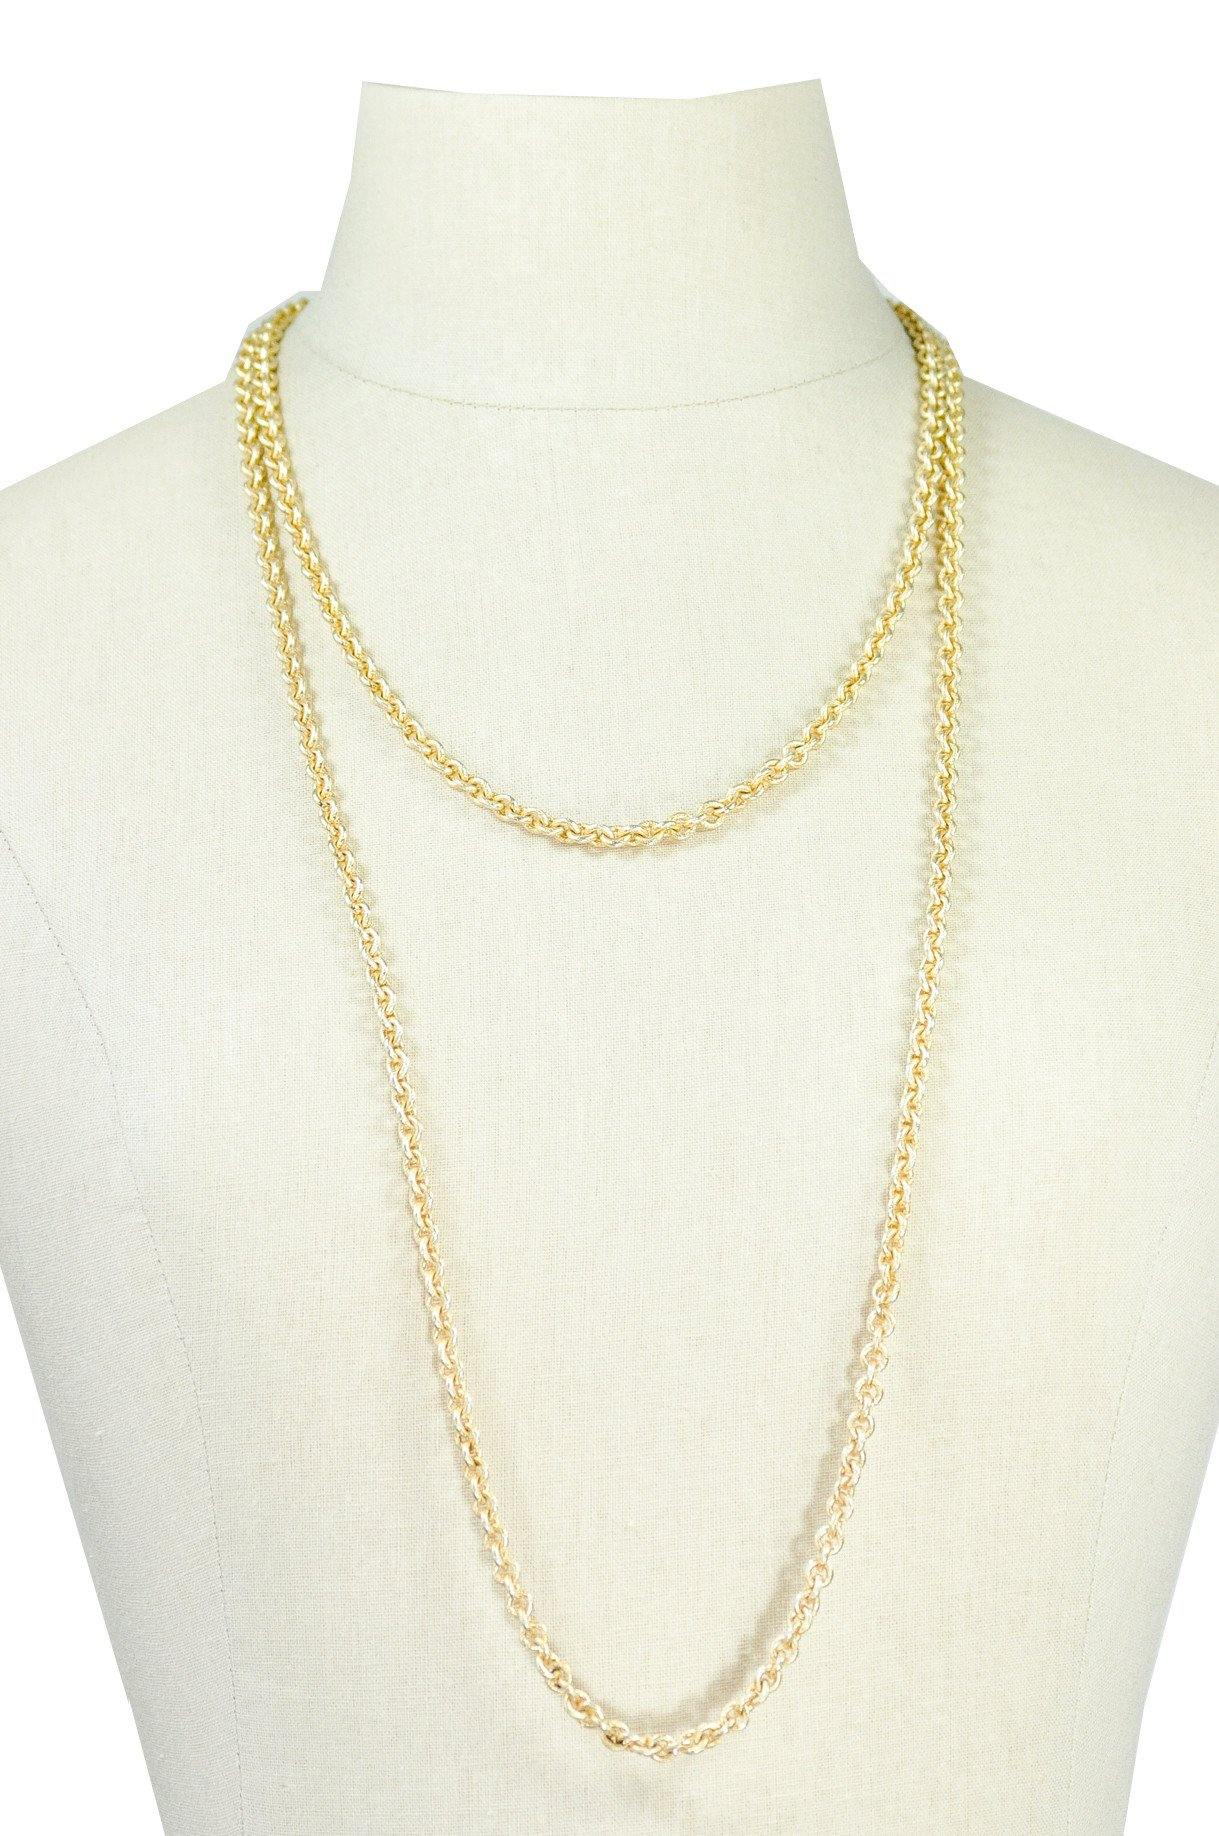 70's__Vintage__Gold Layering Necklace